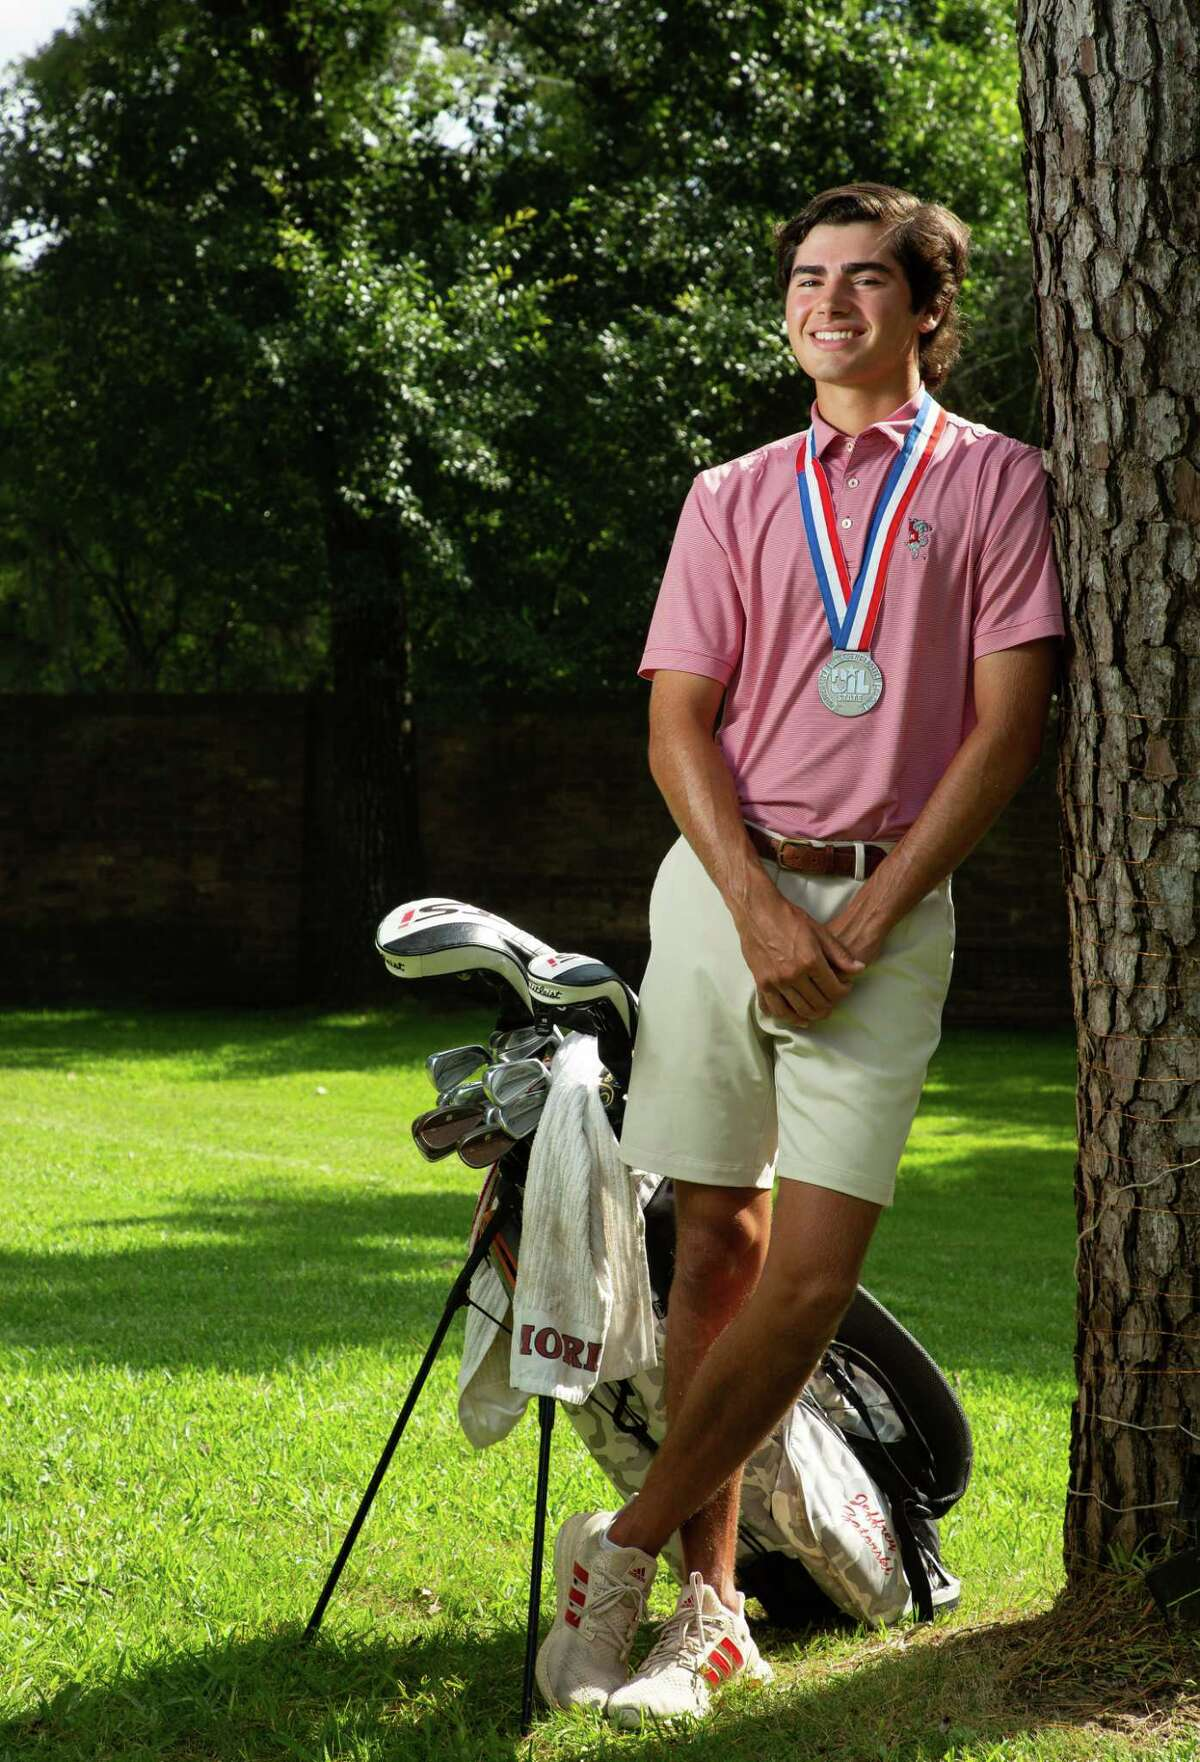 Memorial High School senior Jeffrey Zatorski - who was named All-Greater Houston Boys Golfer of the Year - poses for a photograph on Friday, June 25, 2021, in Houston. The University of Texas signee helped Memorial to a runner-up finish at the state tournament.